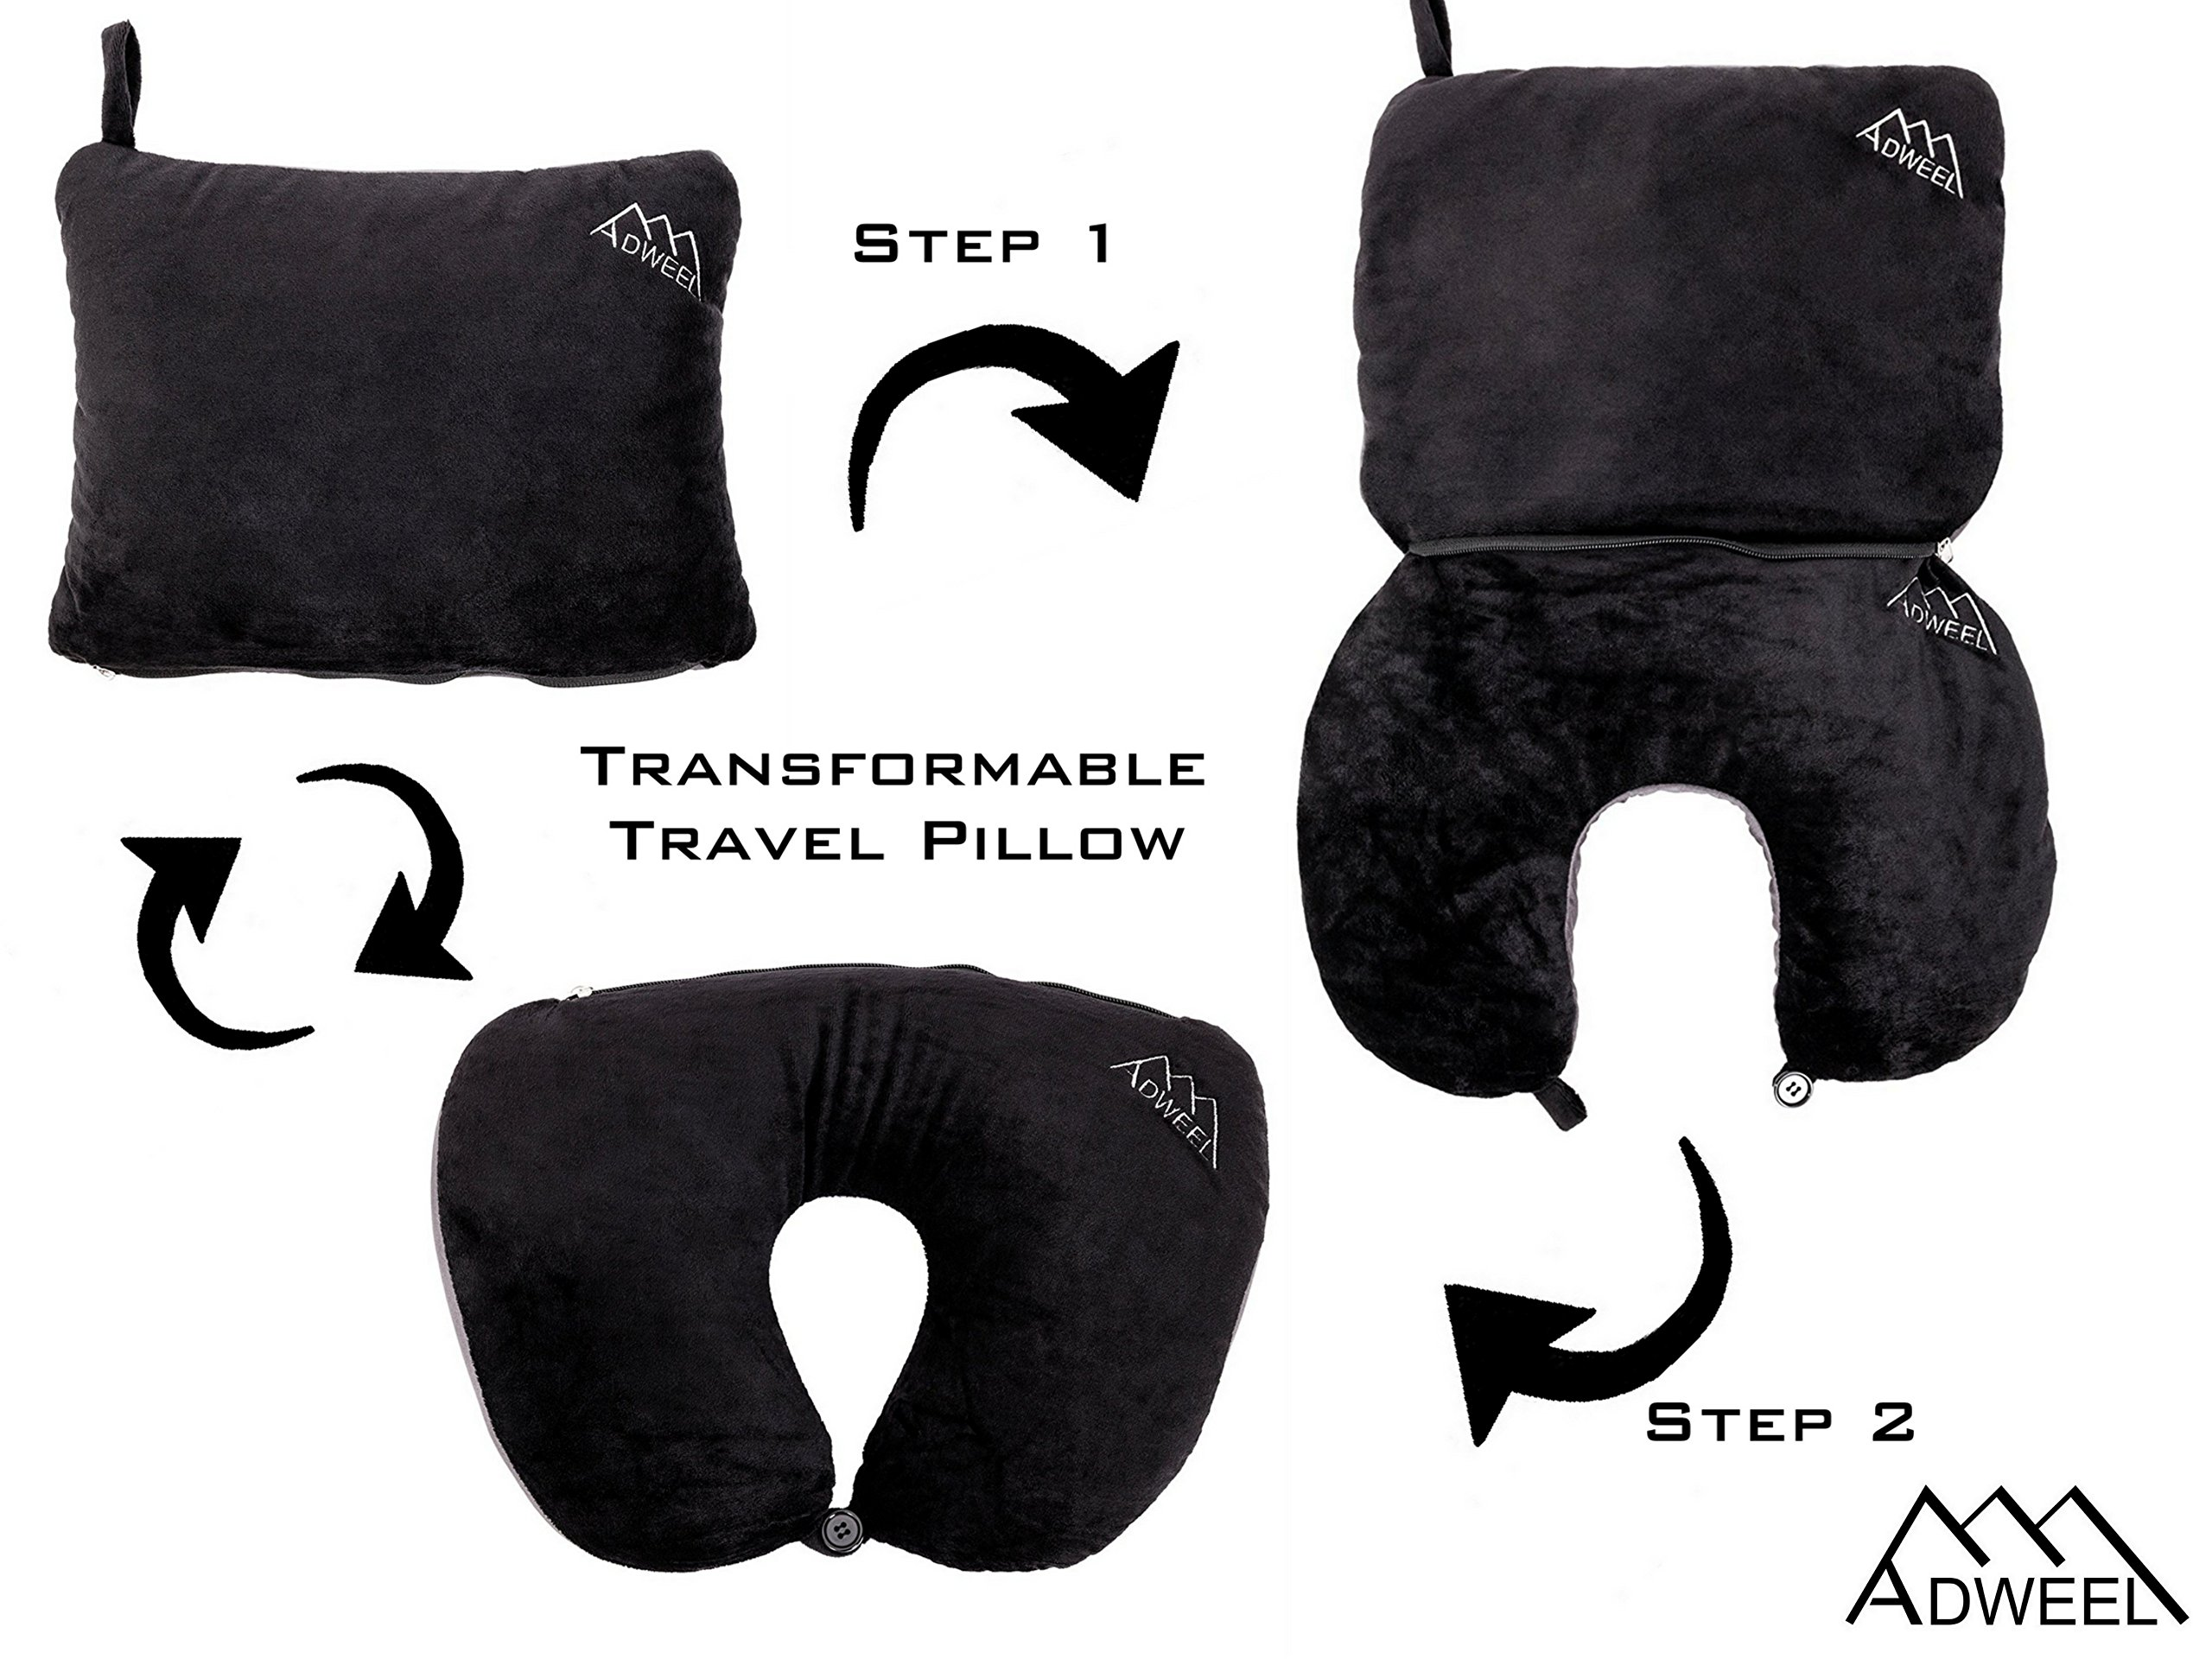 Adweel Neck Travel Pillow Black&Grey Transformable